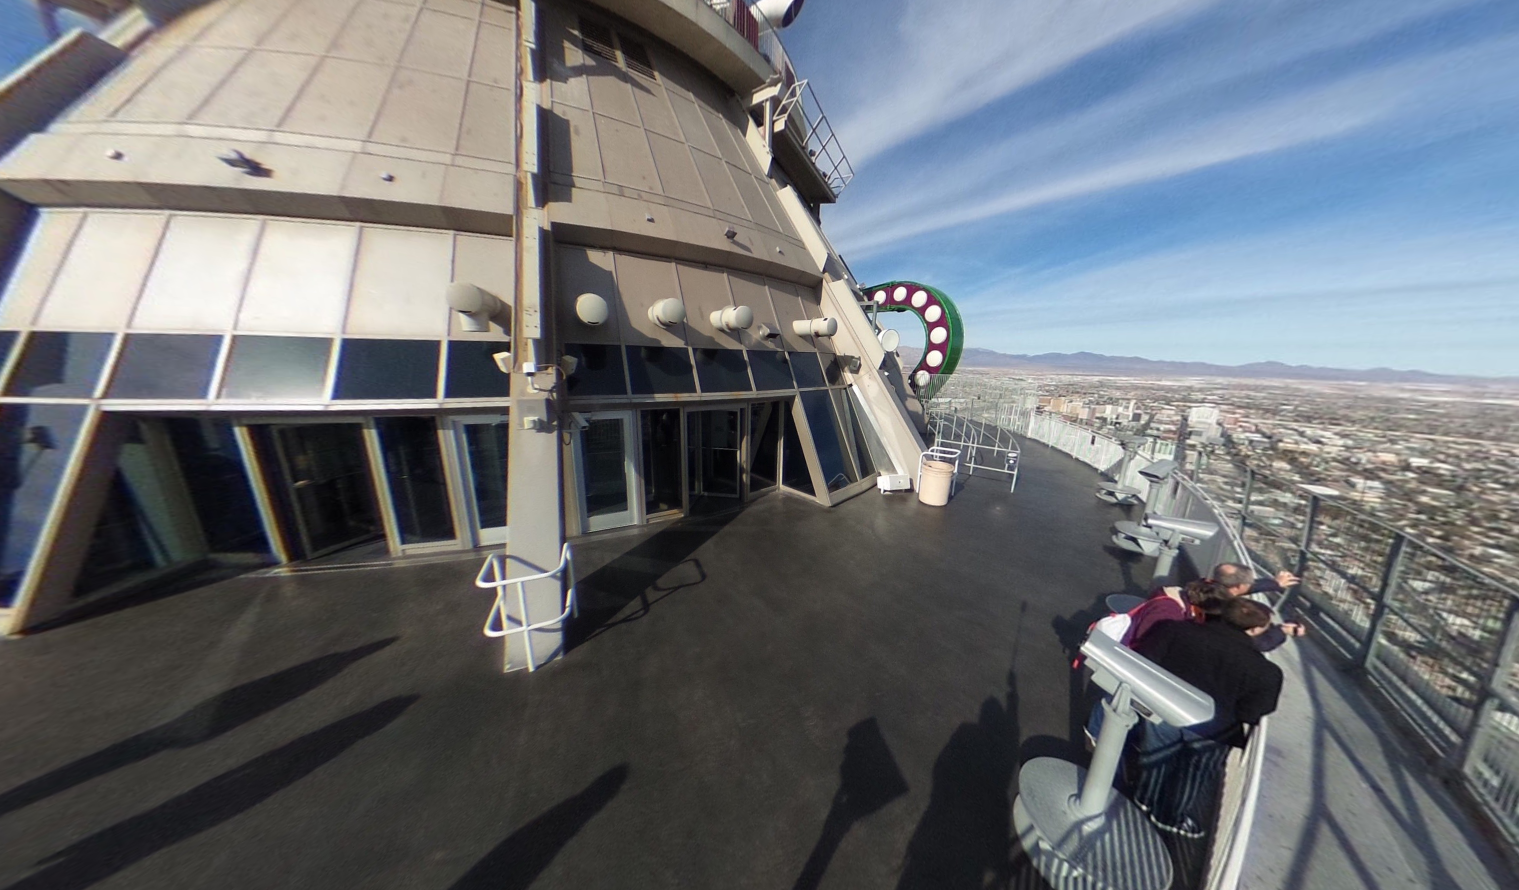 A scenic view of Las Vegas from The Stratosphere Tower's deck where the Big Shot is located